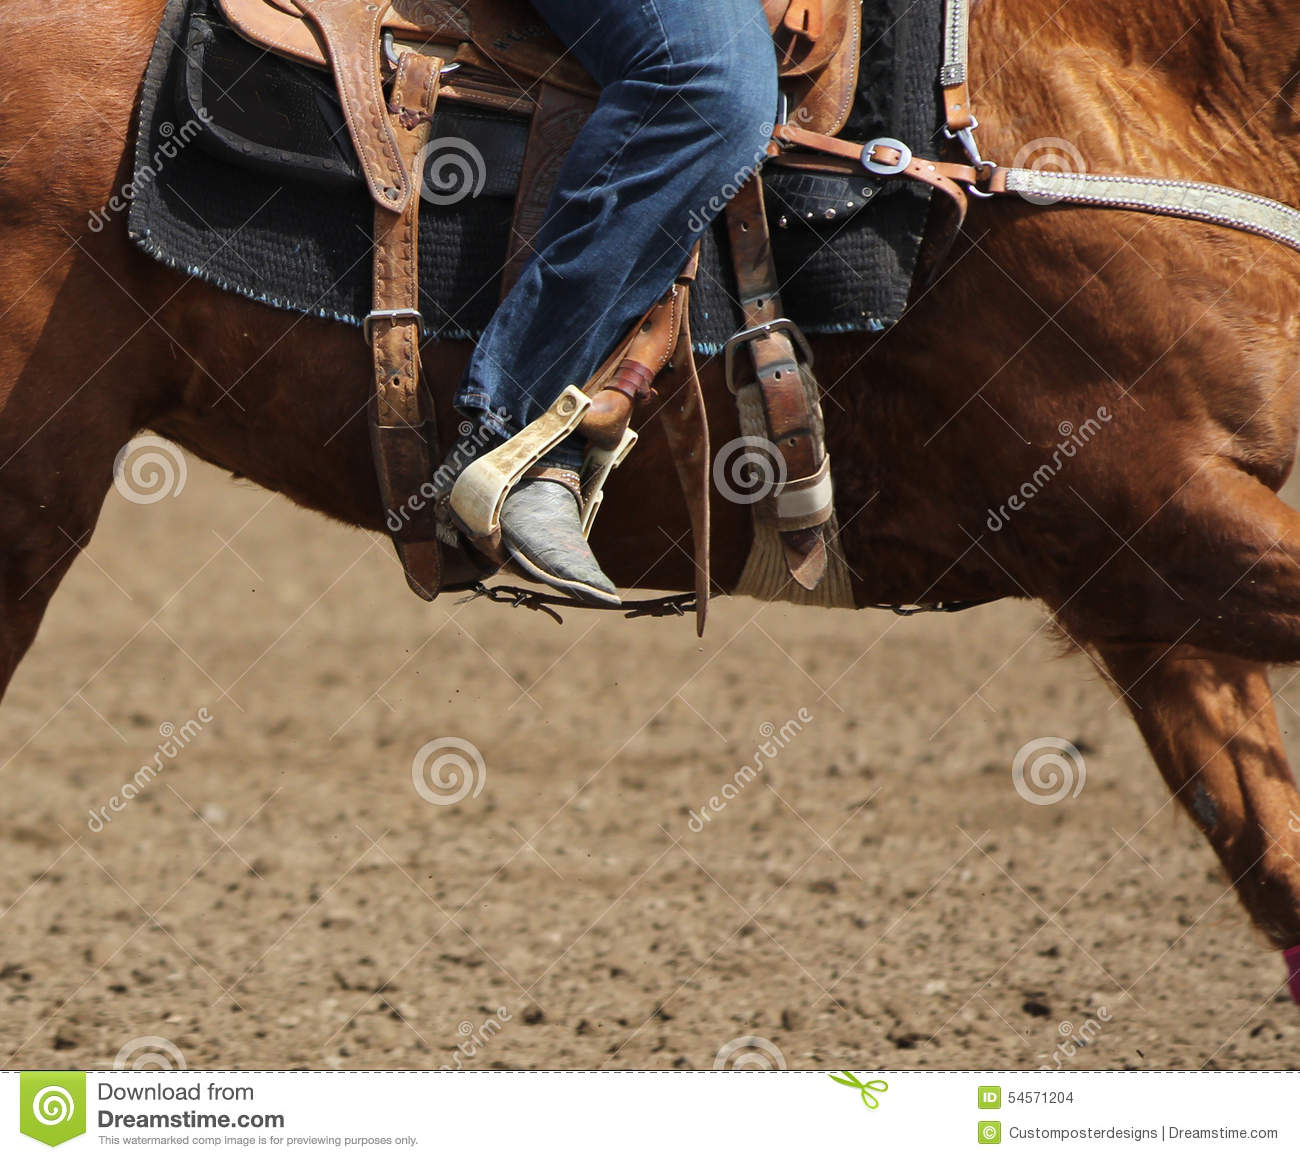 Download A Close Up View Of A Fast Running Horse And Flying Dirt. Stock Photo - Image of flying, equine: 54571204